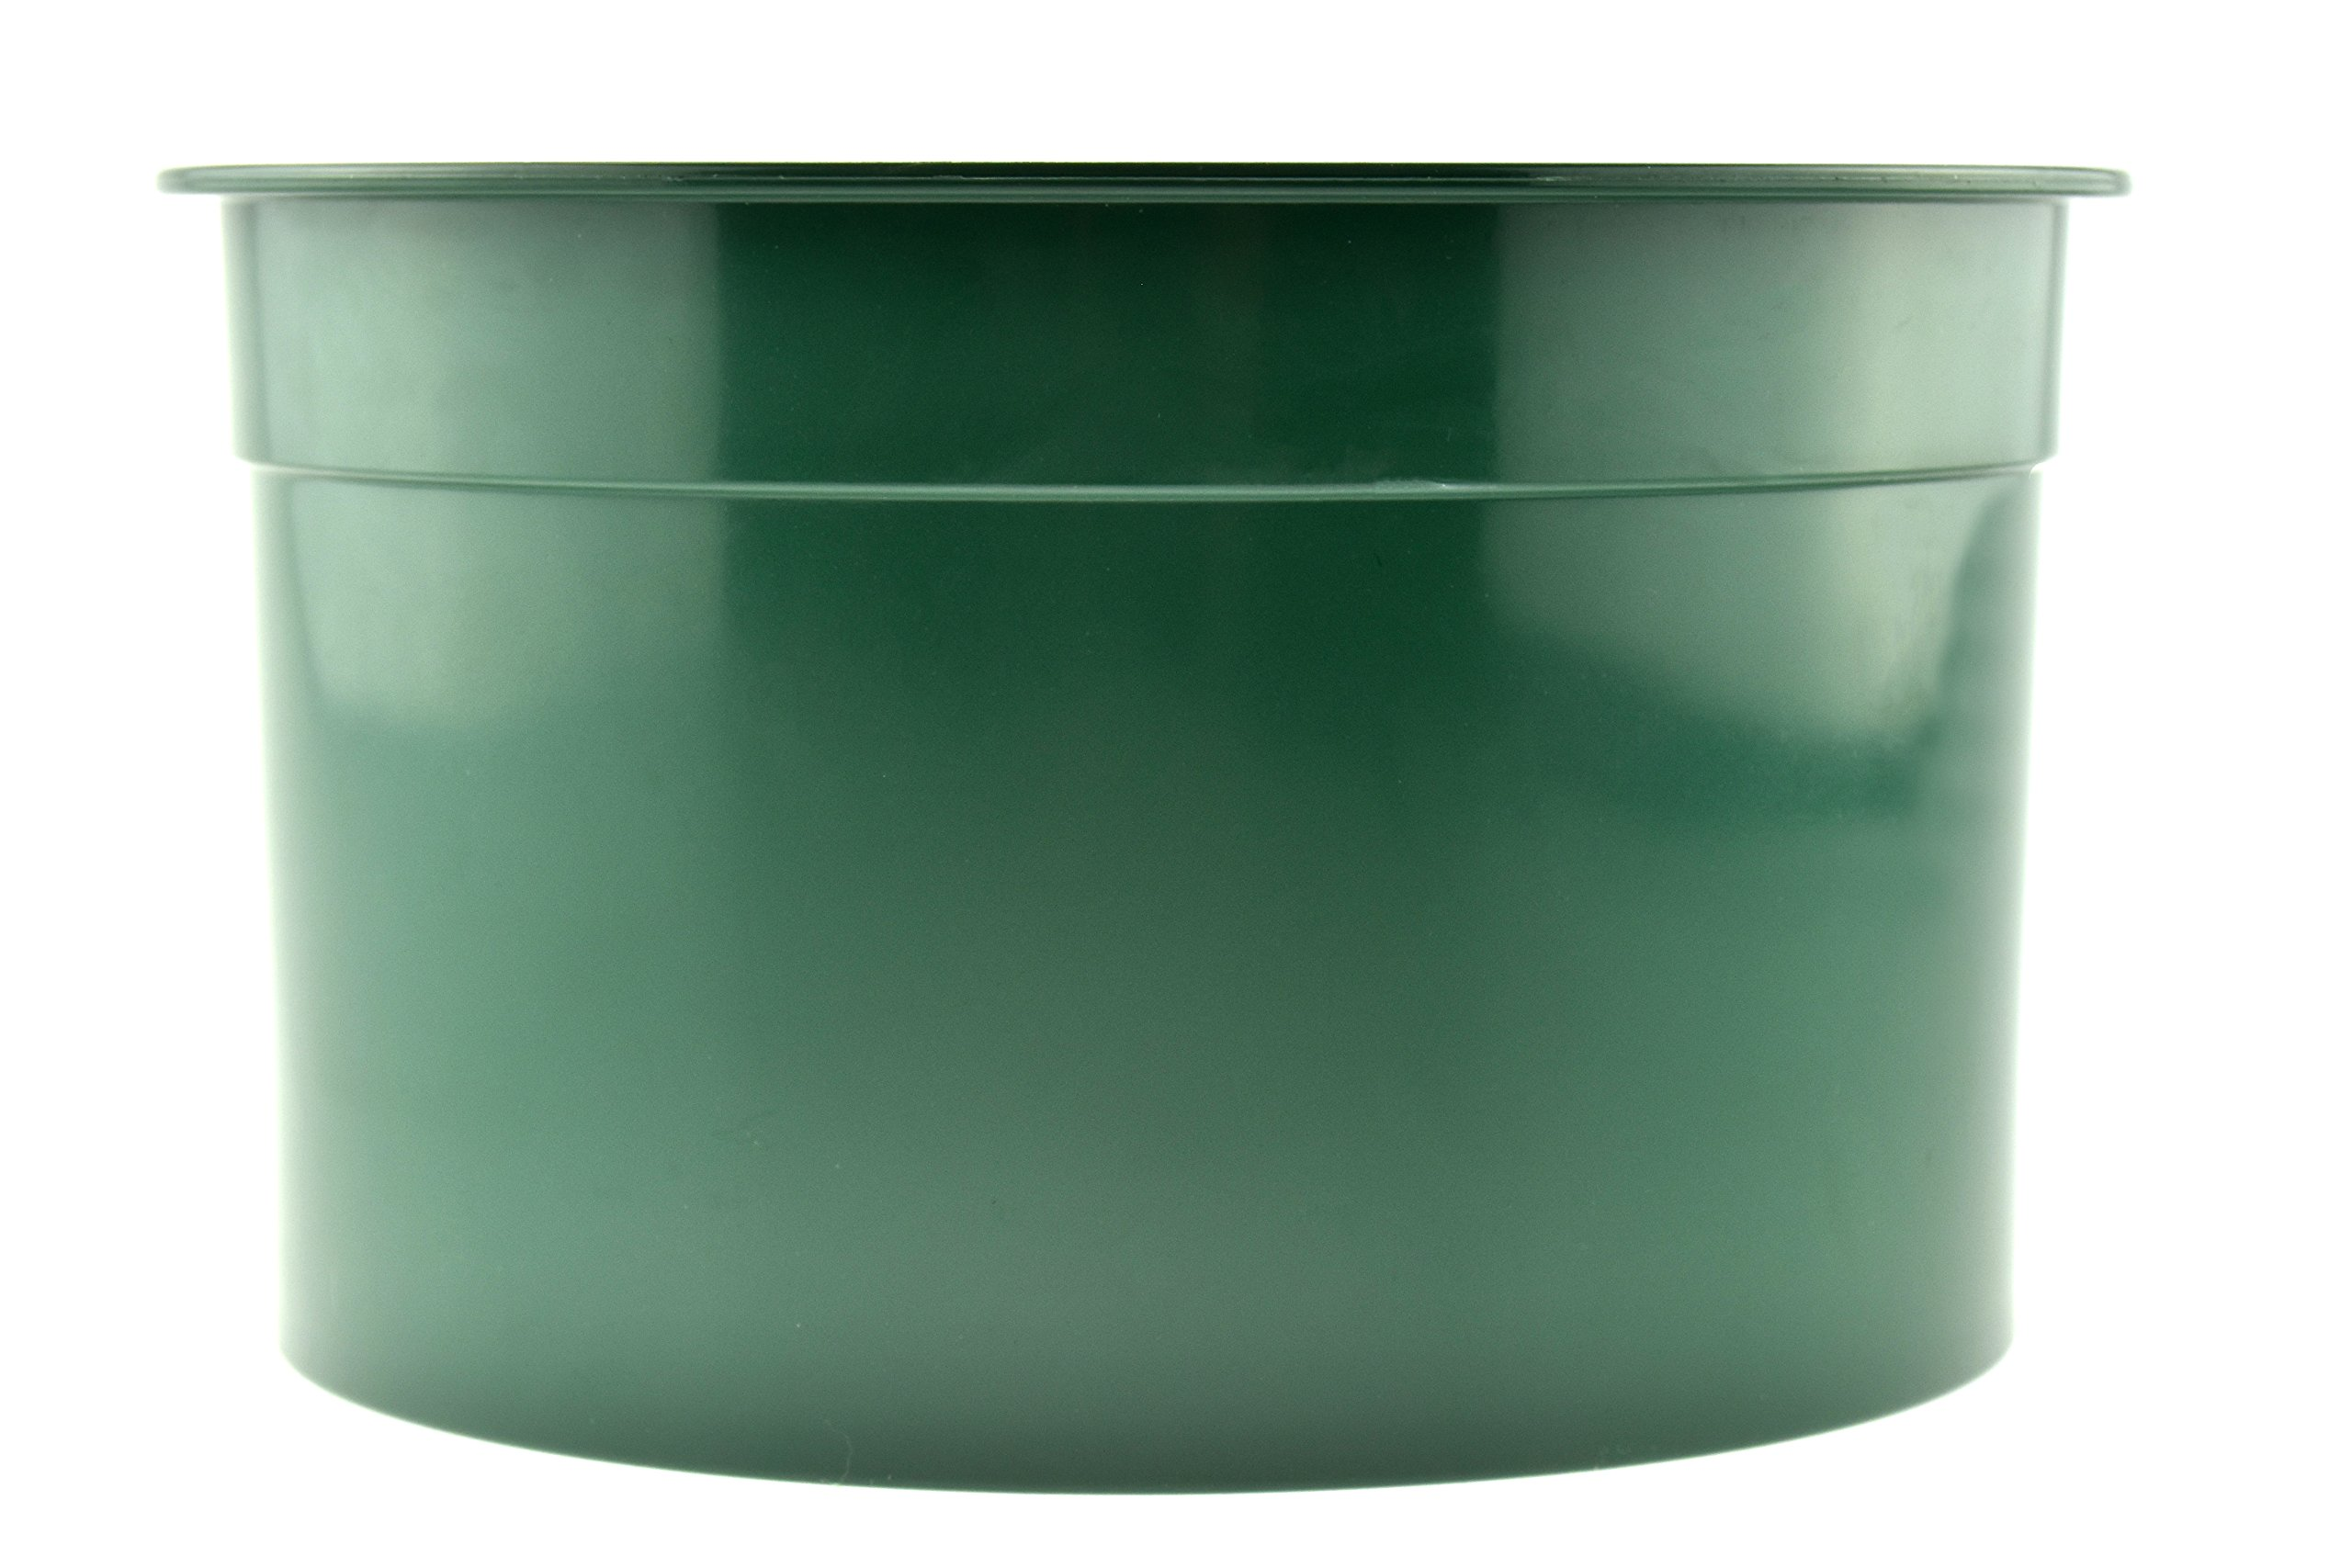 SE GP4-10 5.5'' Mini Stackable Sifting Pan, 10 Holes/Square Inch by SE (Image #3)